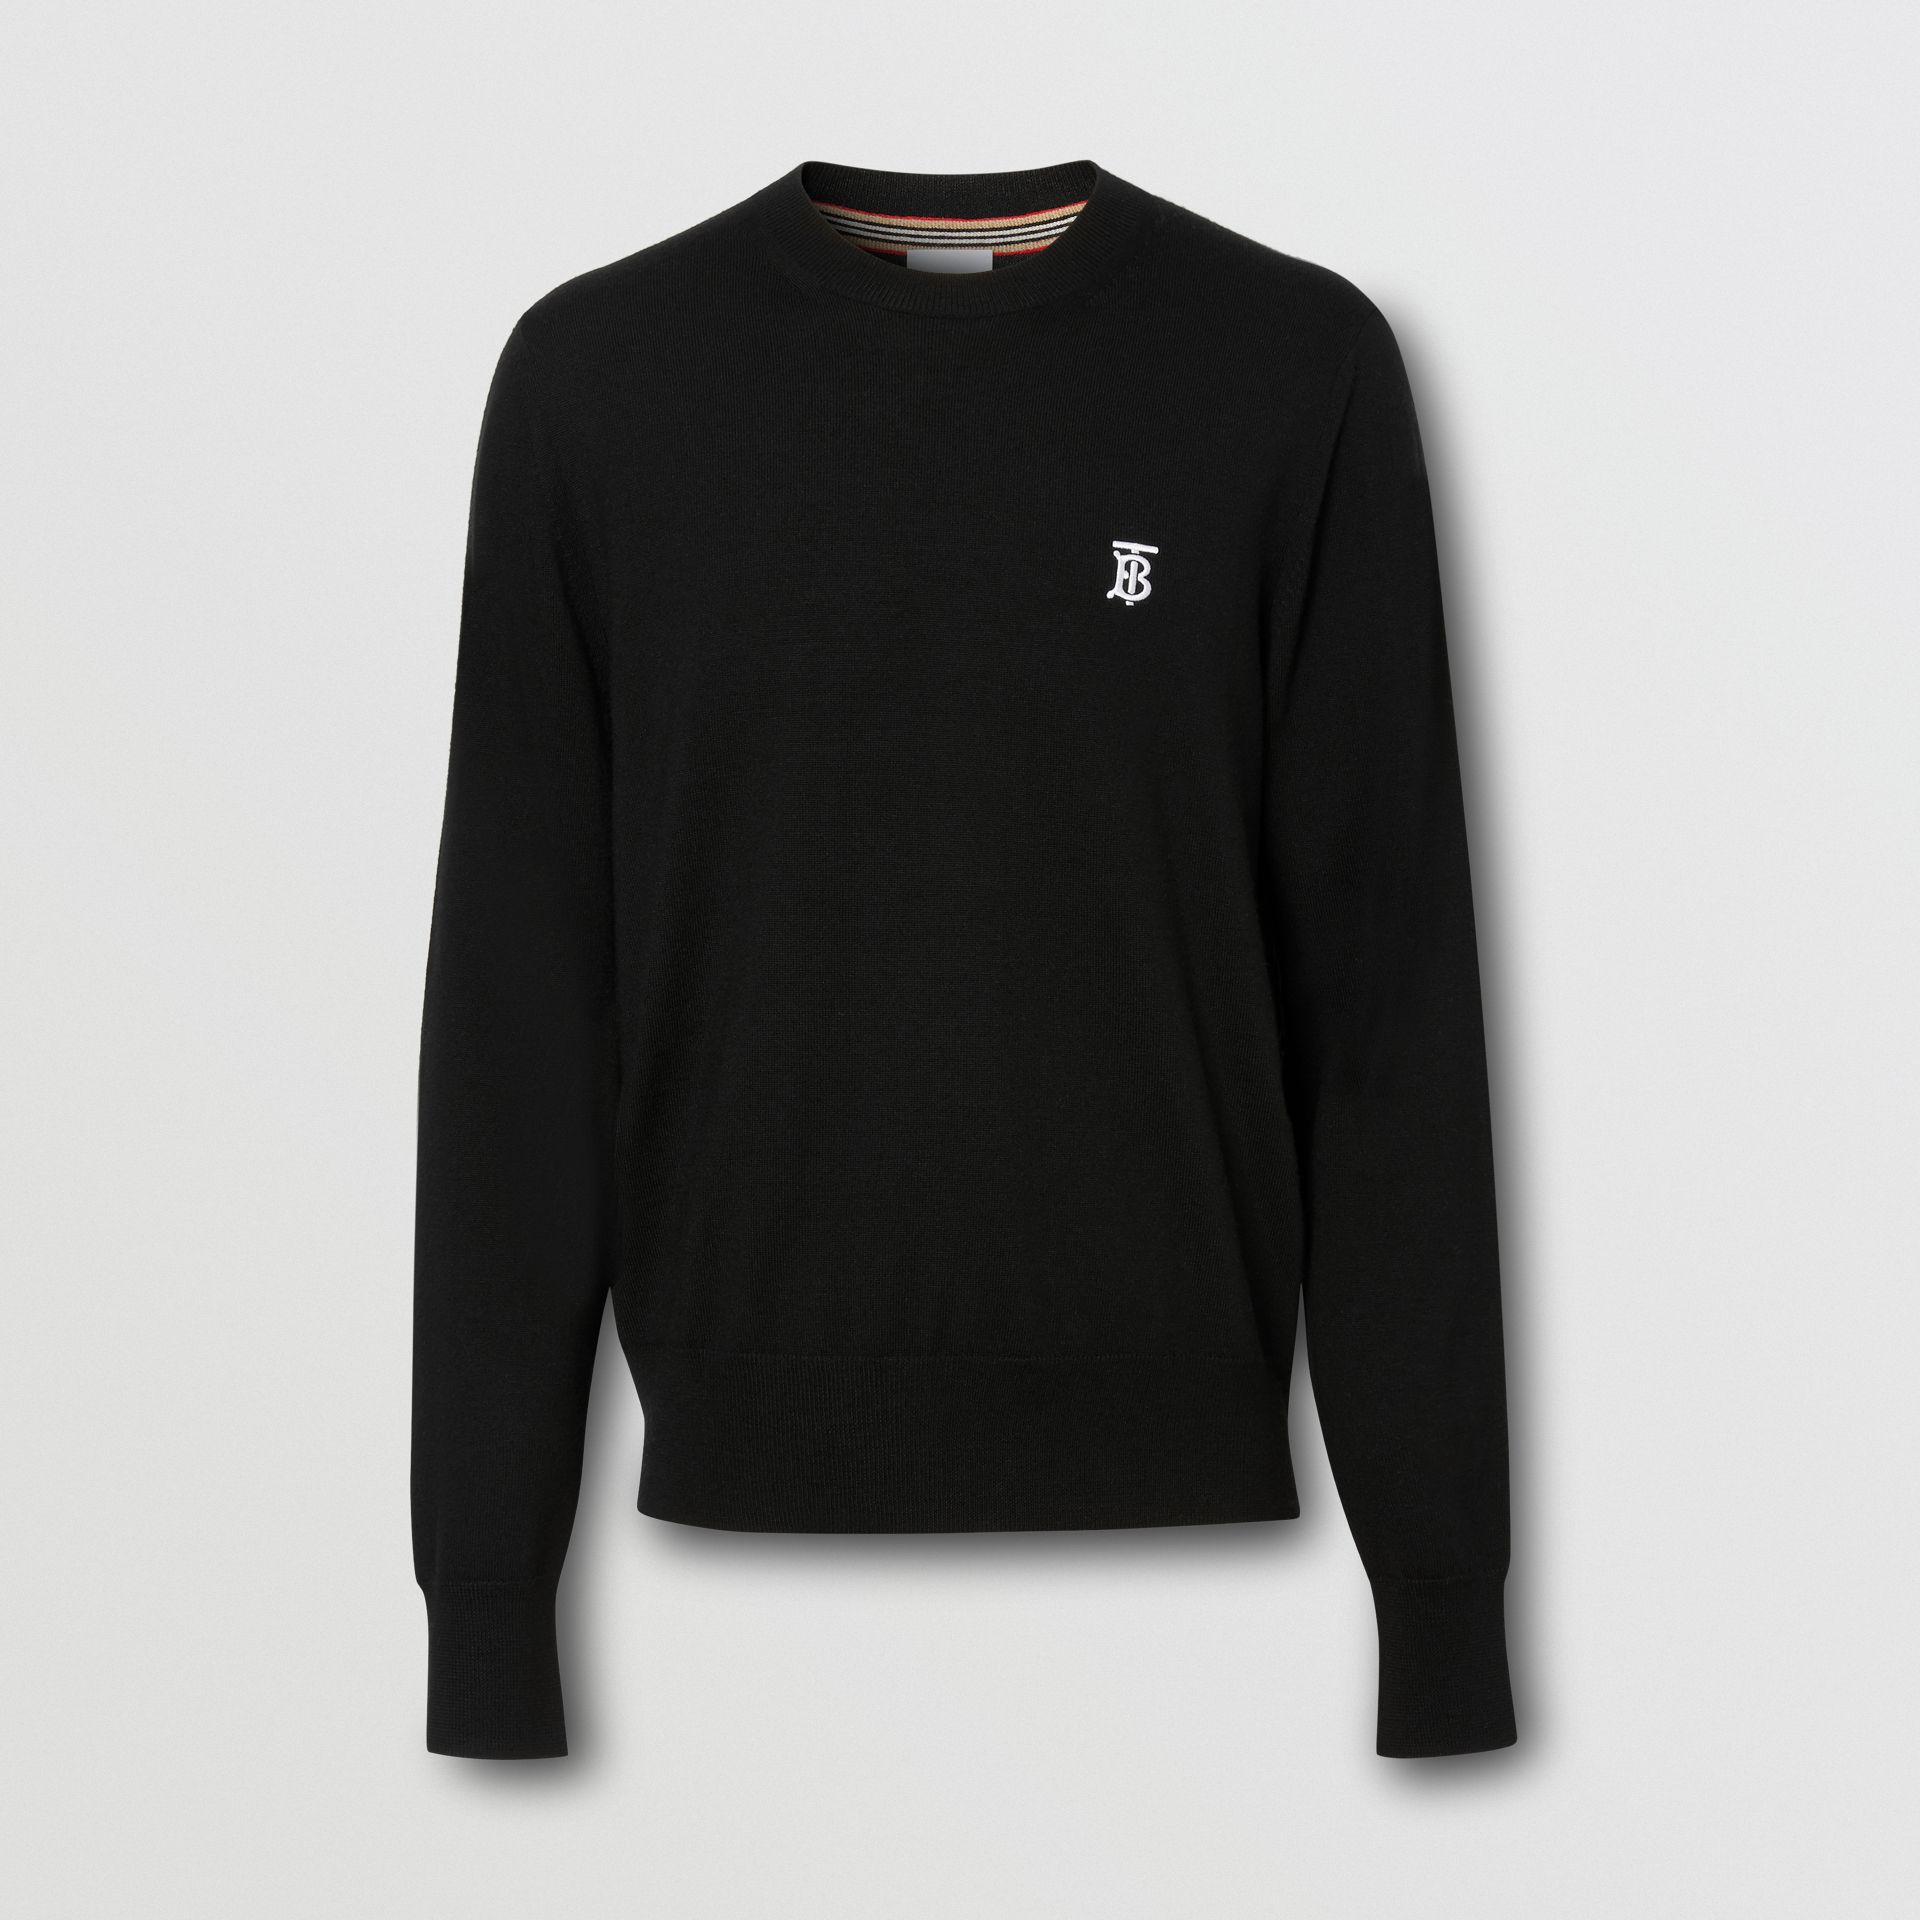 Monogram Motif Merino Wool Sweater in Black - Men | Burberry Australia - gallery image 3